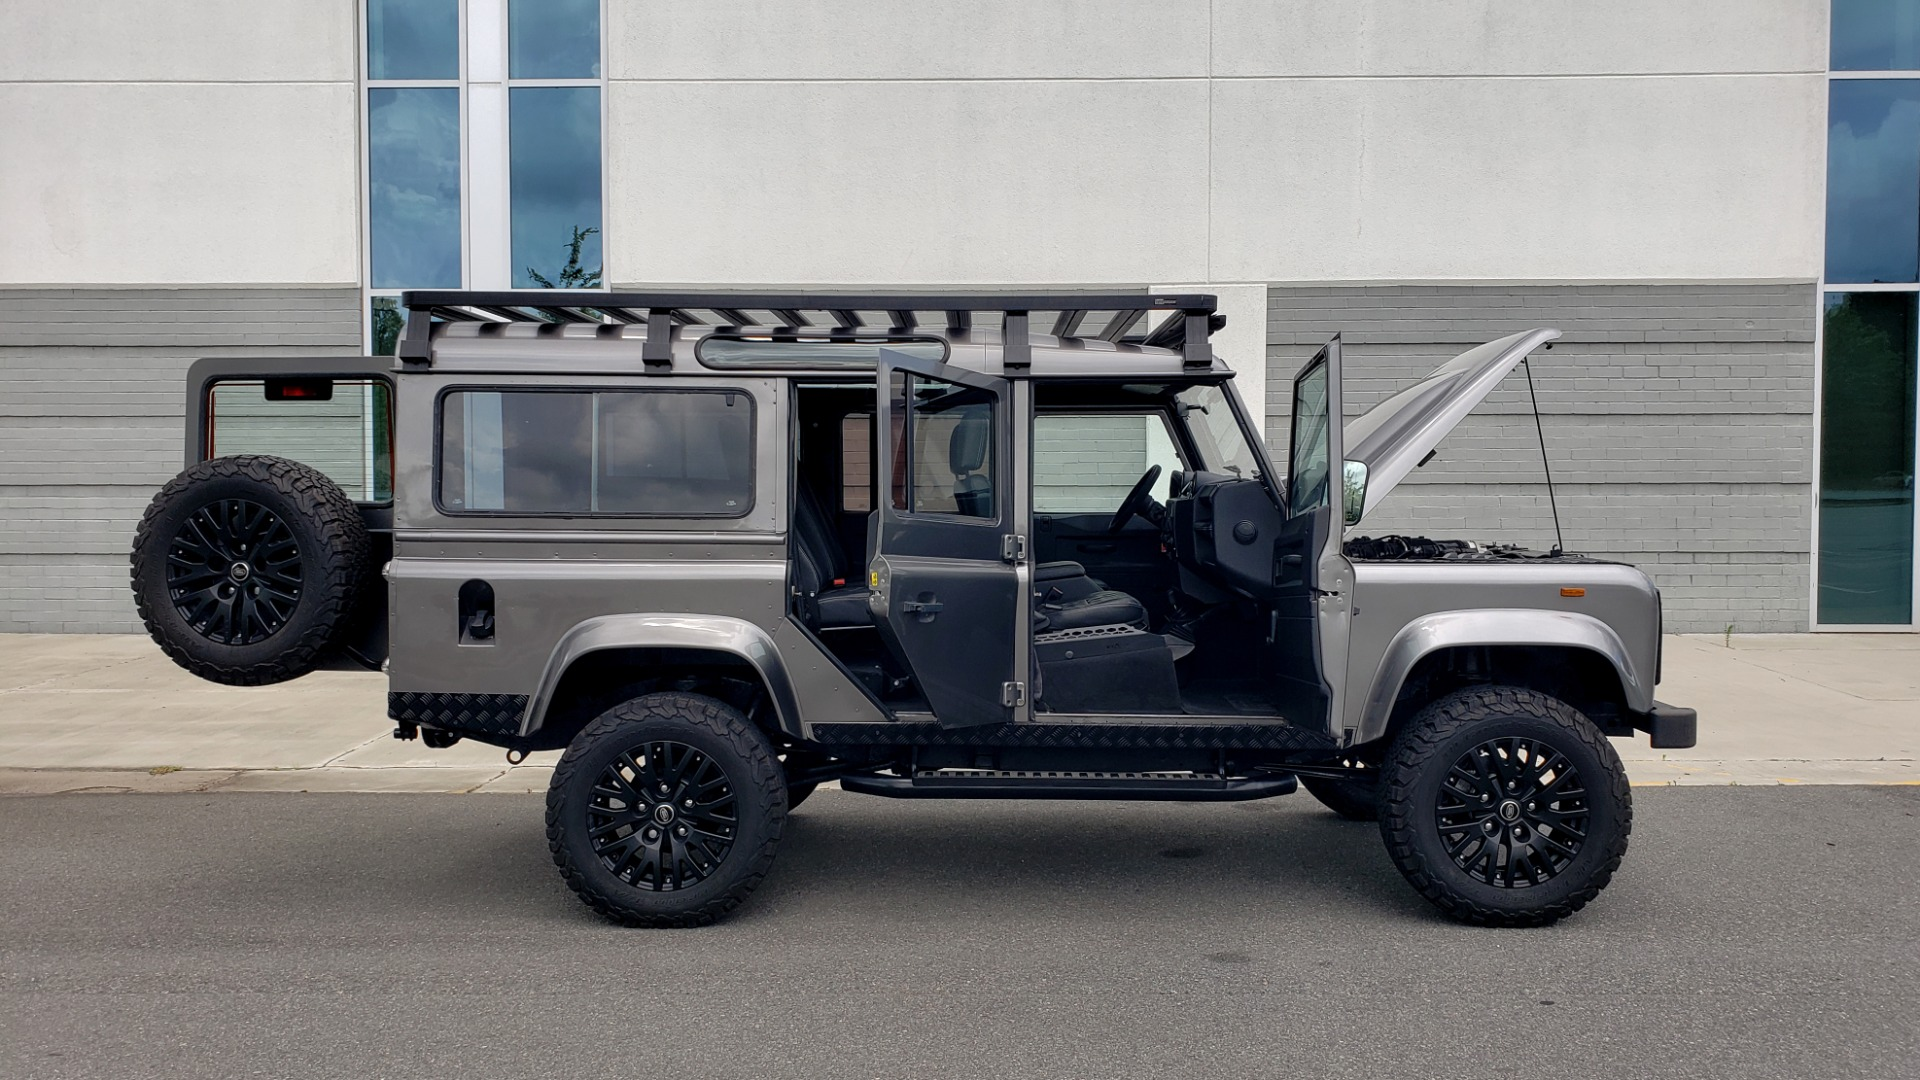 Used 1988 Land Rover DEFENDER 110 CUSTOM 4X4 / LS V8 / PUSH BUTTON AUTO / LEATHER / ROOF RACK for sale $147,888 at Formula Imports in Charlotte NC 28227 27